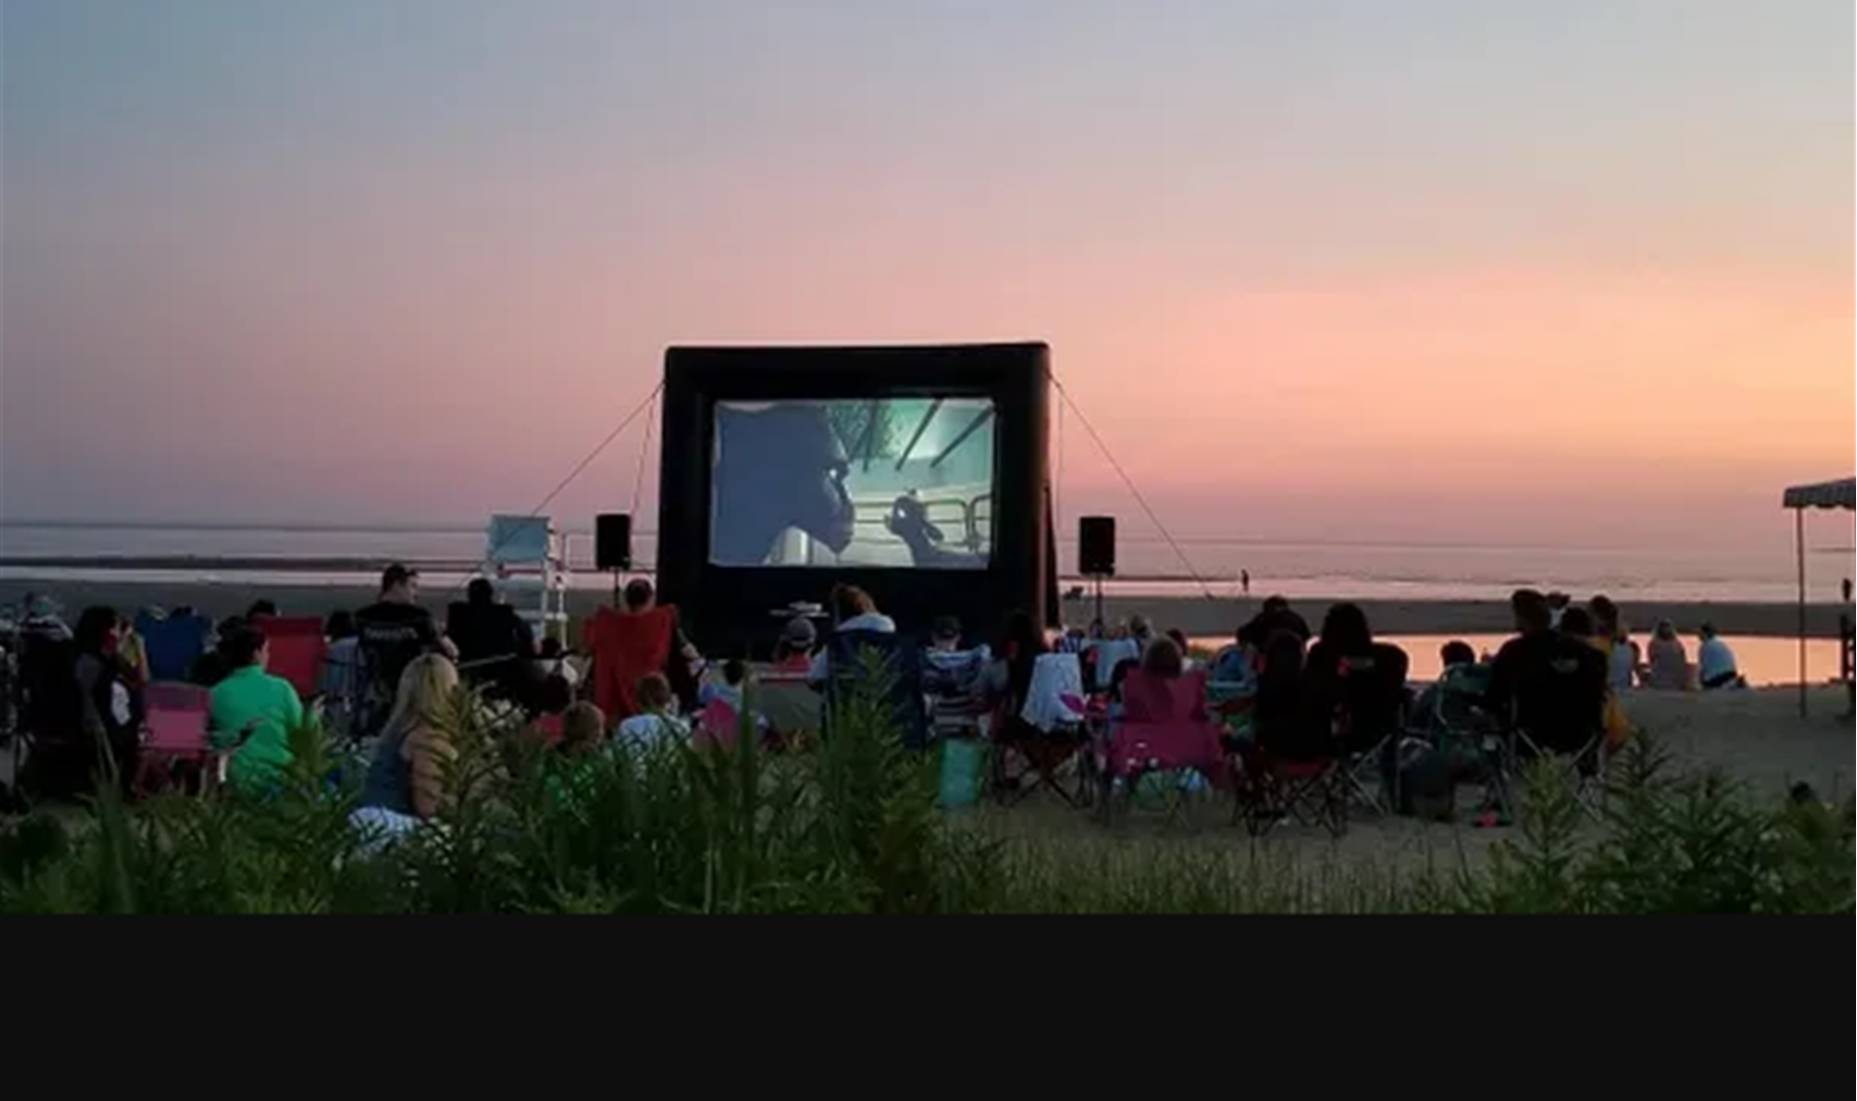 Outdoor movie theater inflatable screen rental in New Orleans